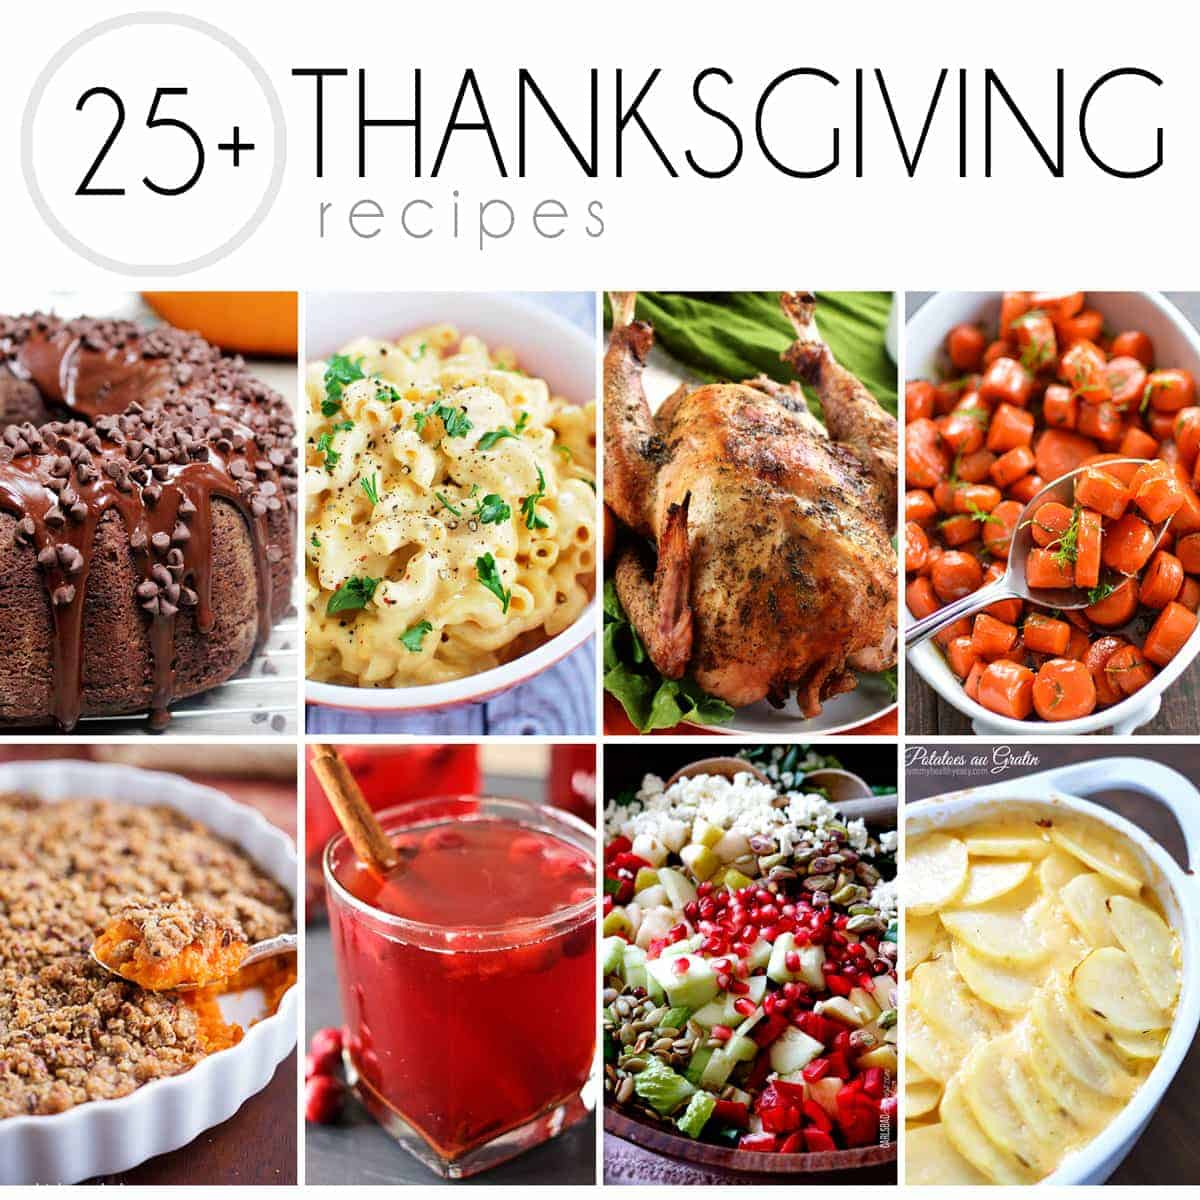 From side dishes, to drinks, to desserts, to the turkey, I've got everything you need in this 25+ Thanksgiving Recipes post to create an amazing dinner.